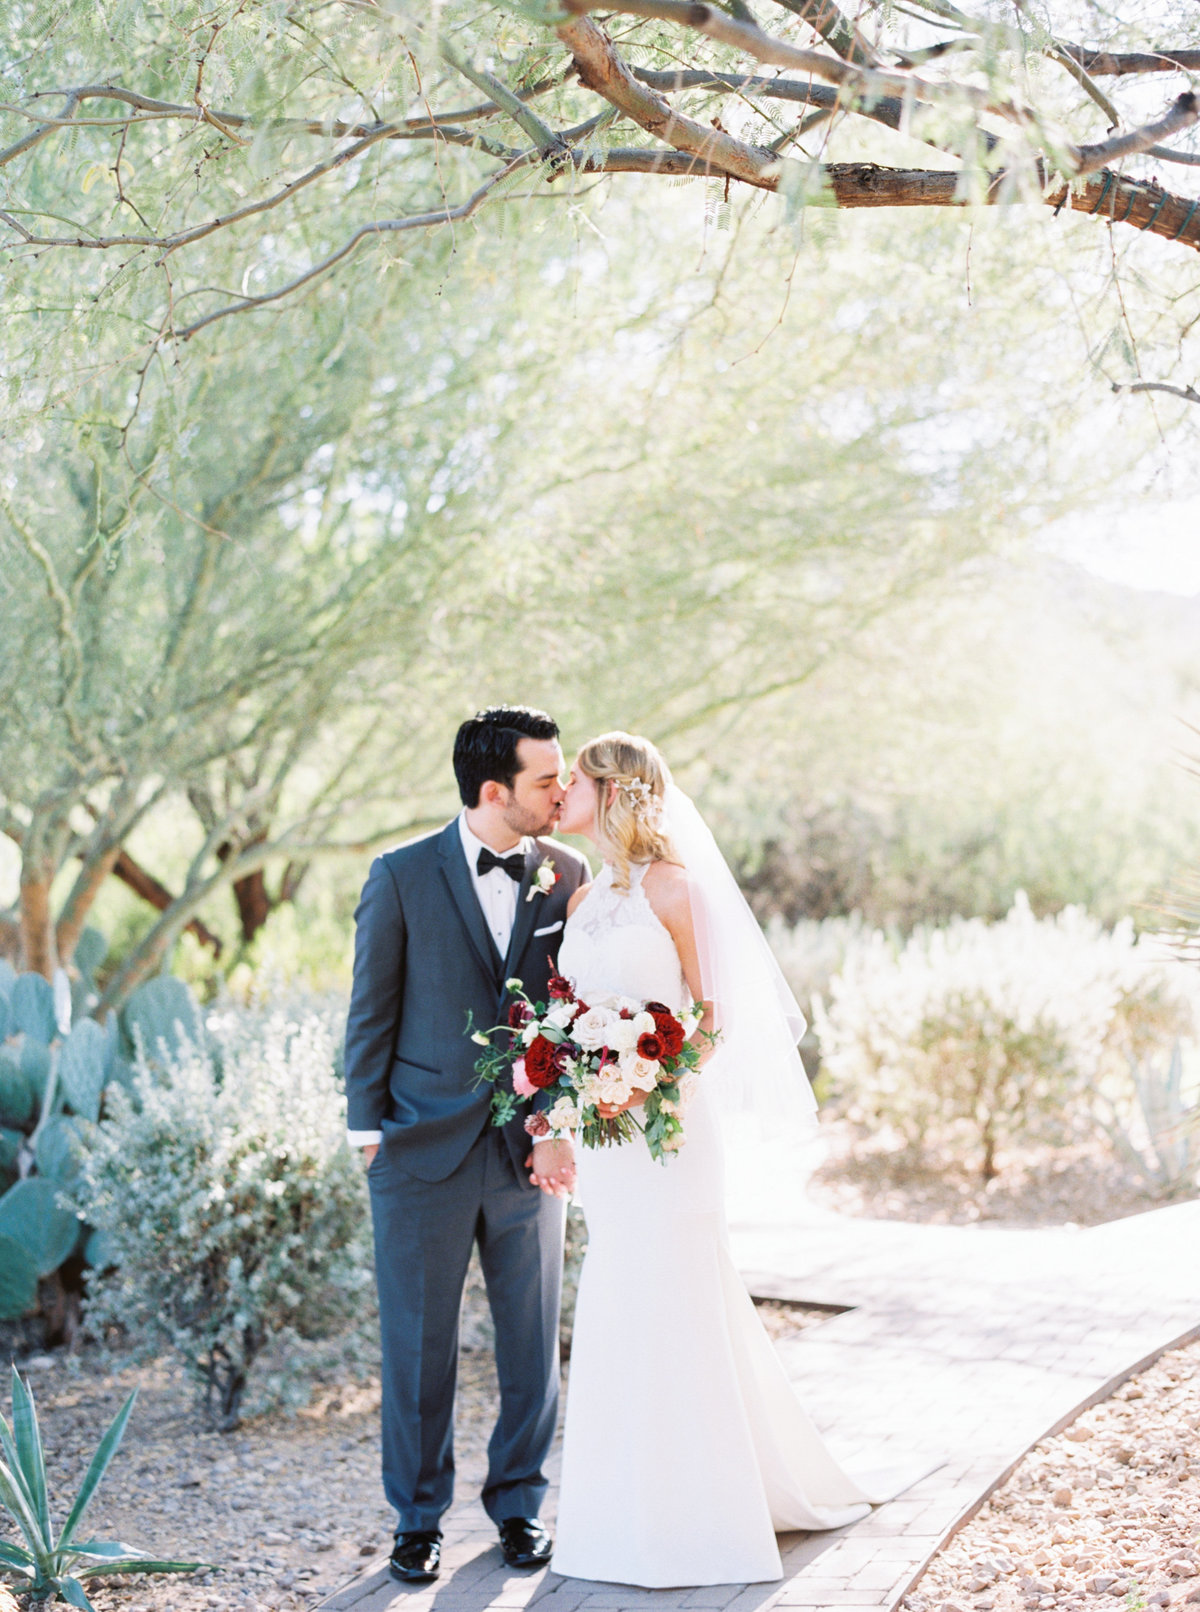 El Chorro Scottsdale Wedding - Mary Claire Photography-32